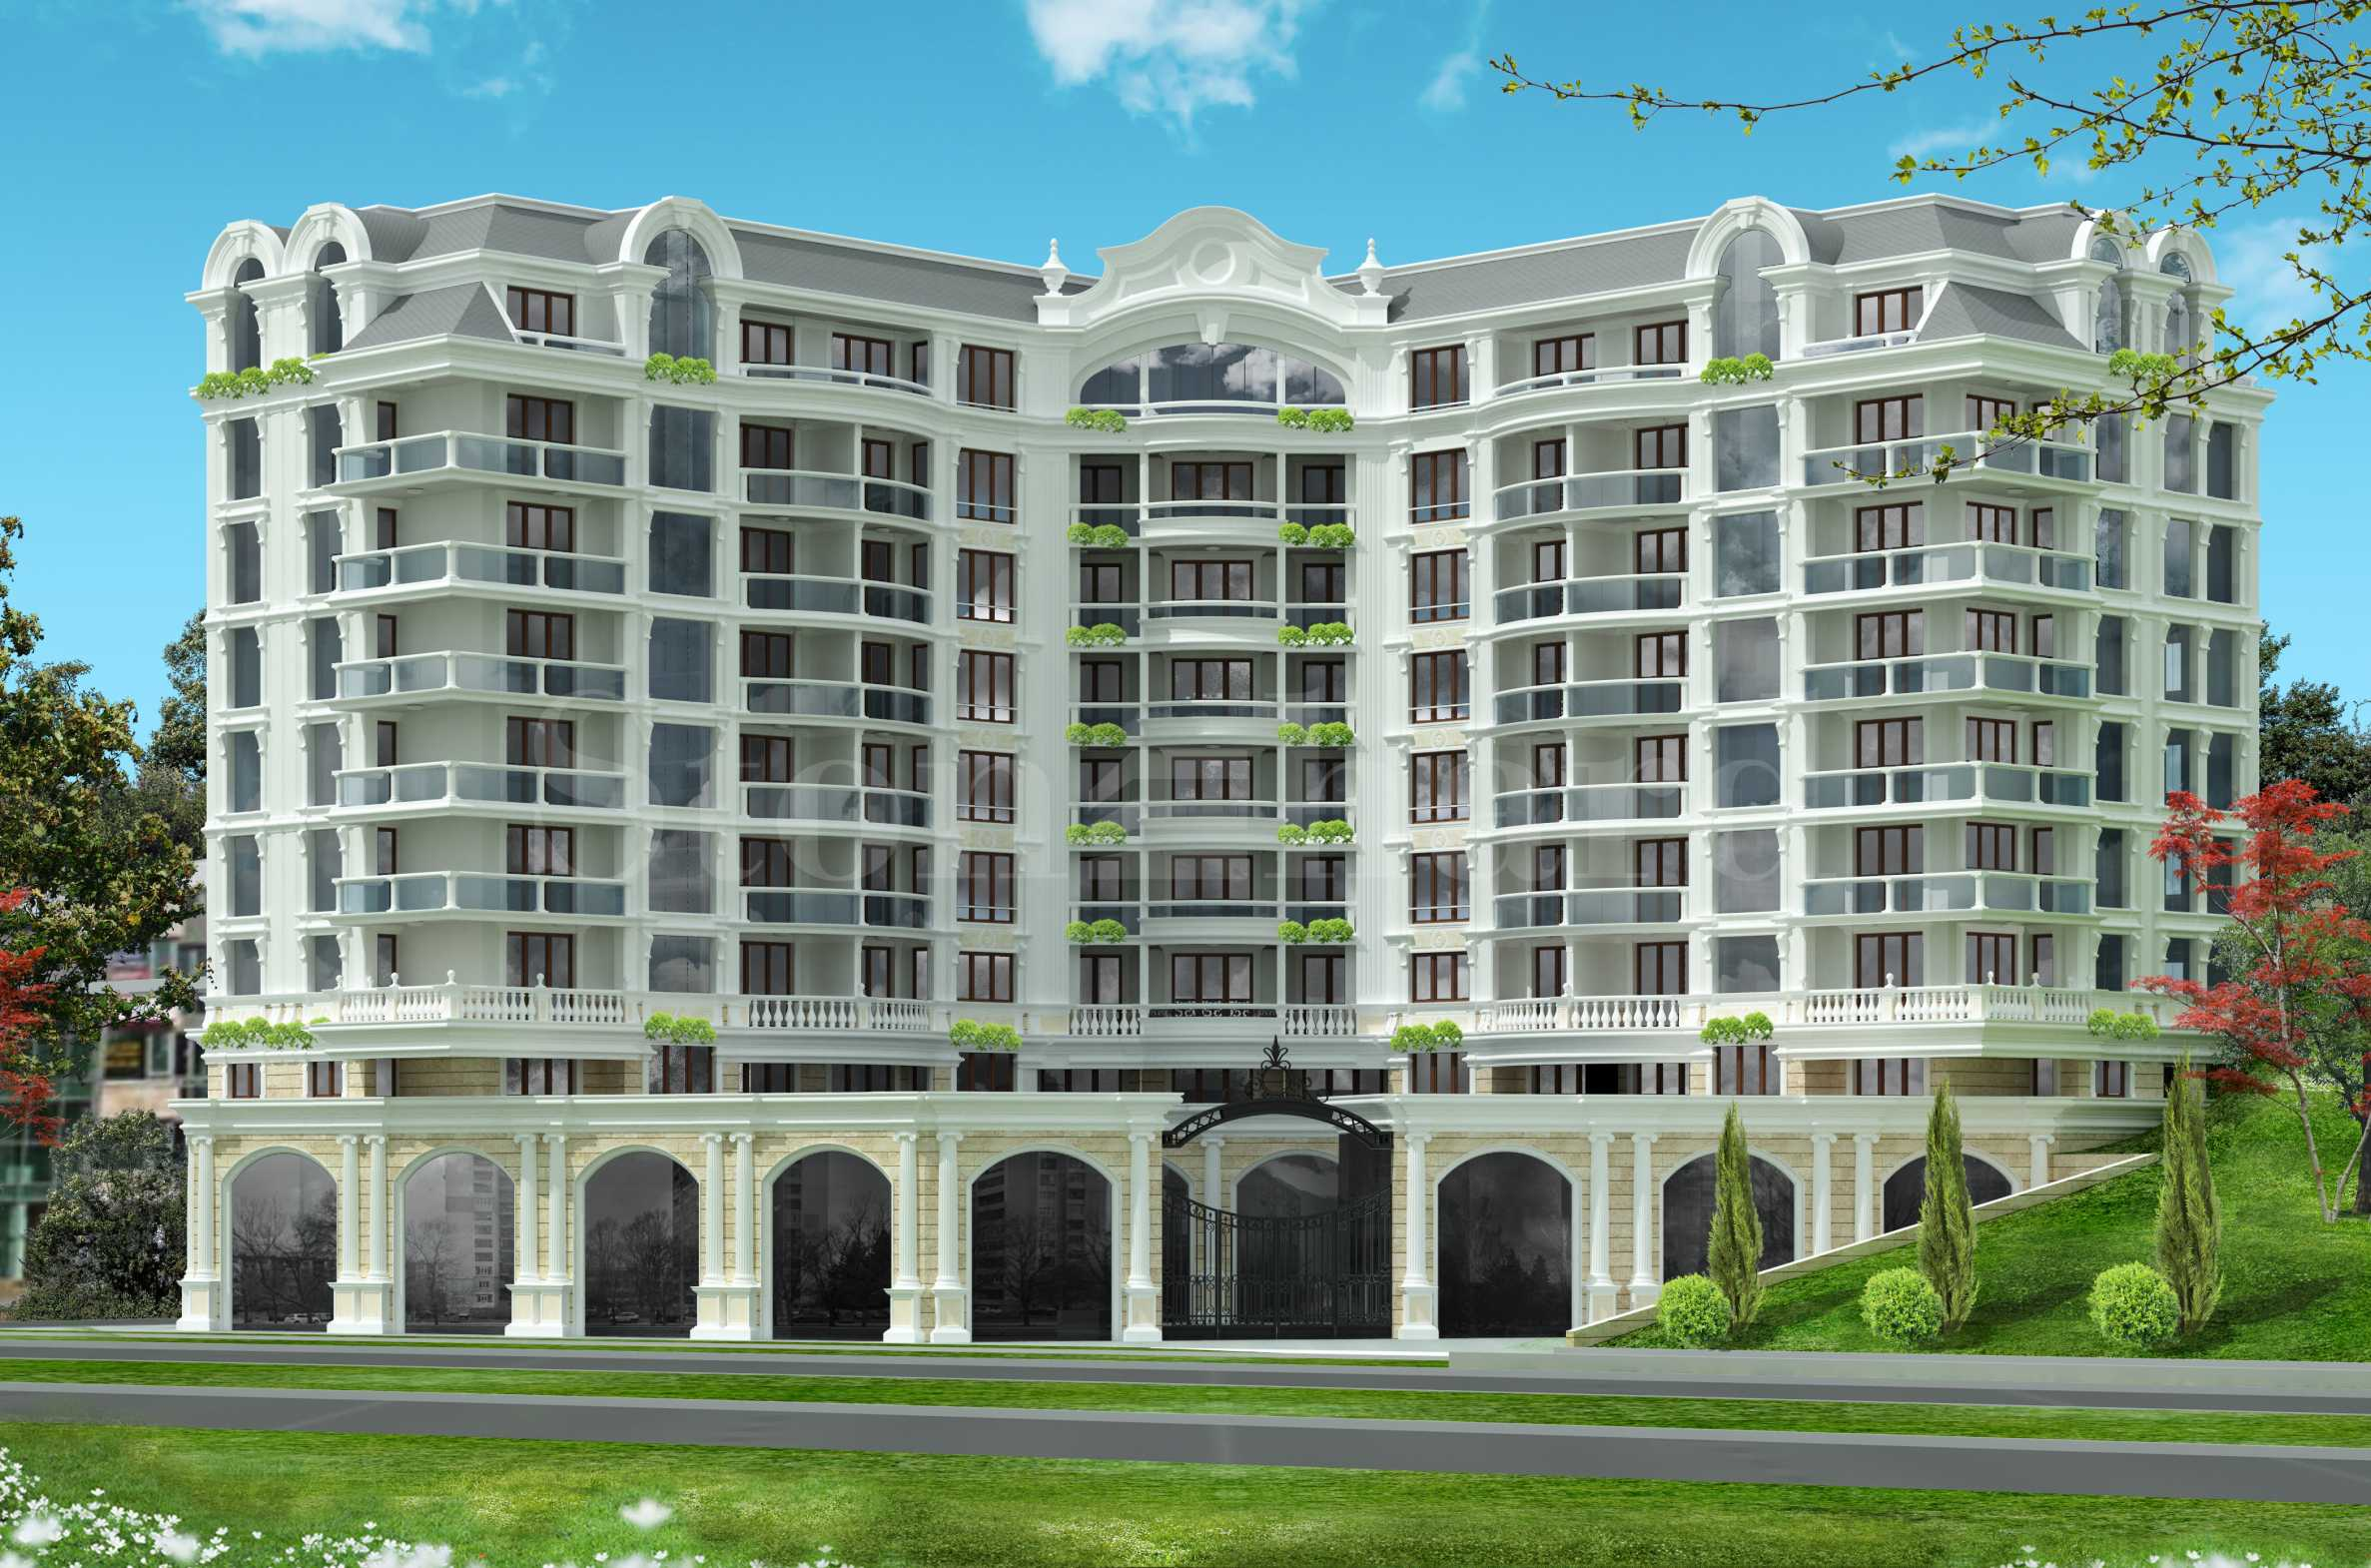 Spacious and functional apartments in a desirable neighborhood1 - Stonehard